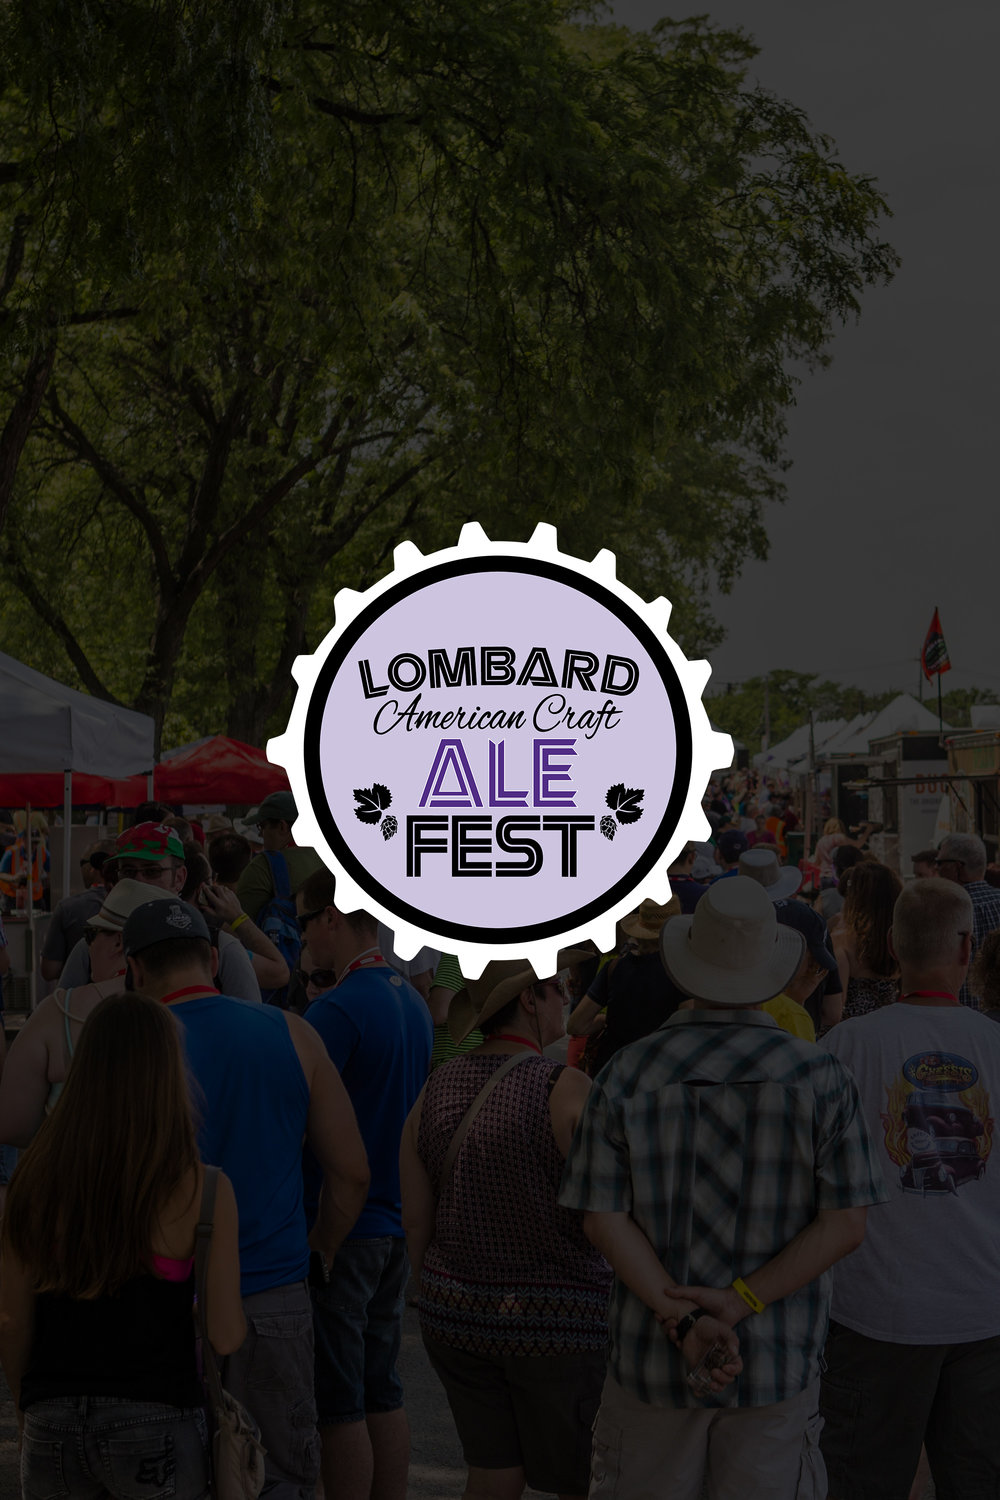 Lombard Ale Fest